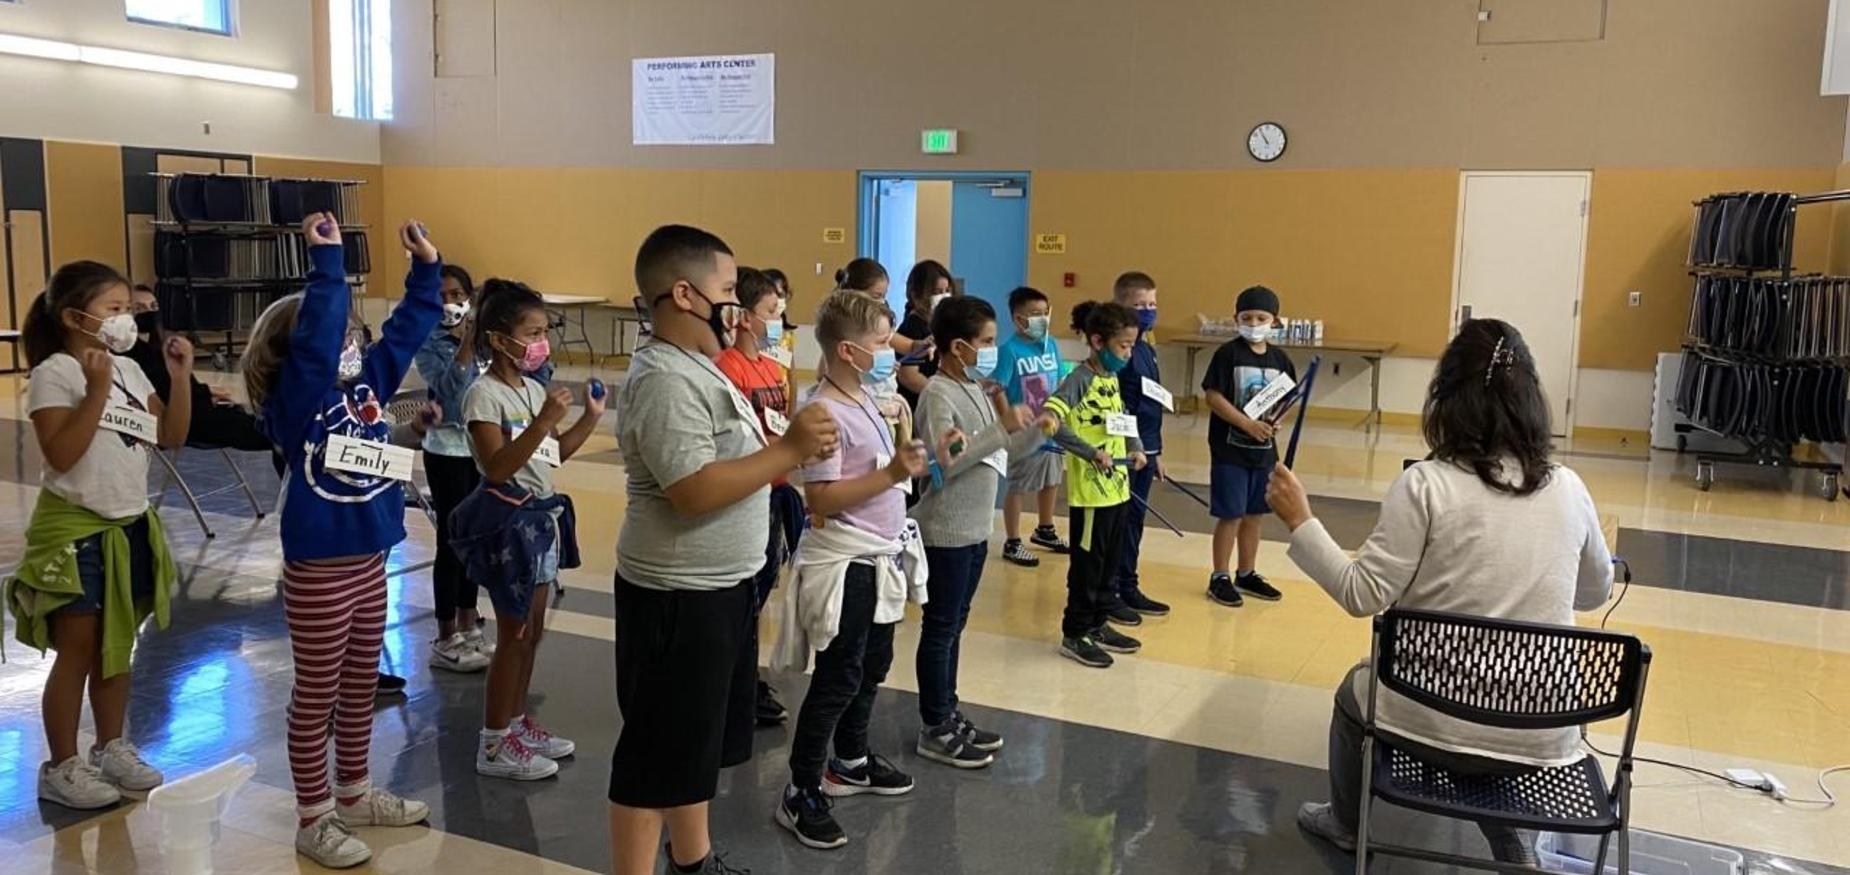 Room 11 playing instruments in music class